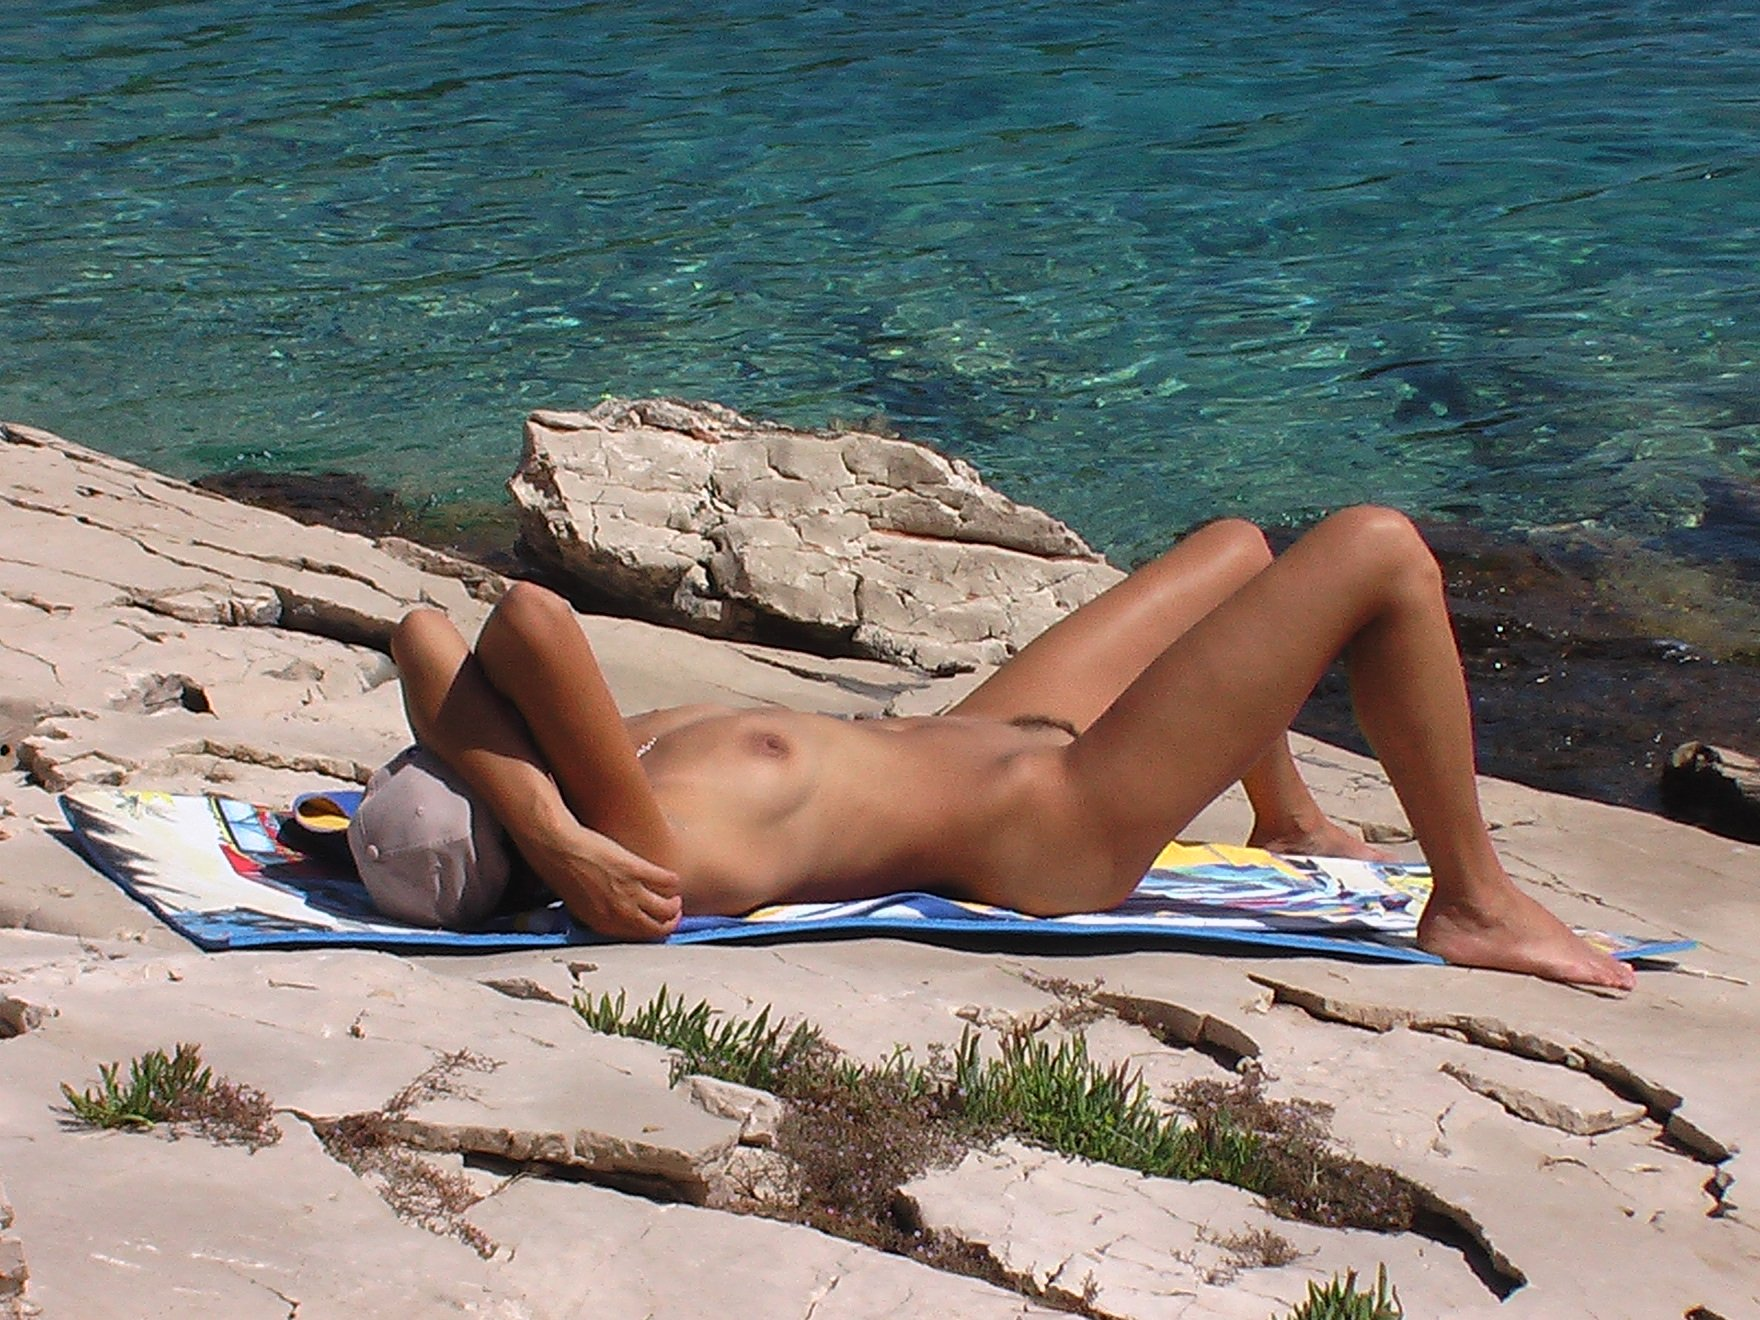 My Sexy Wife Nude On The Beach Nude Girls Pictures-9389